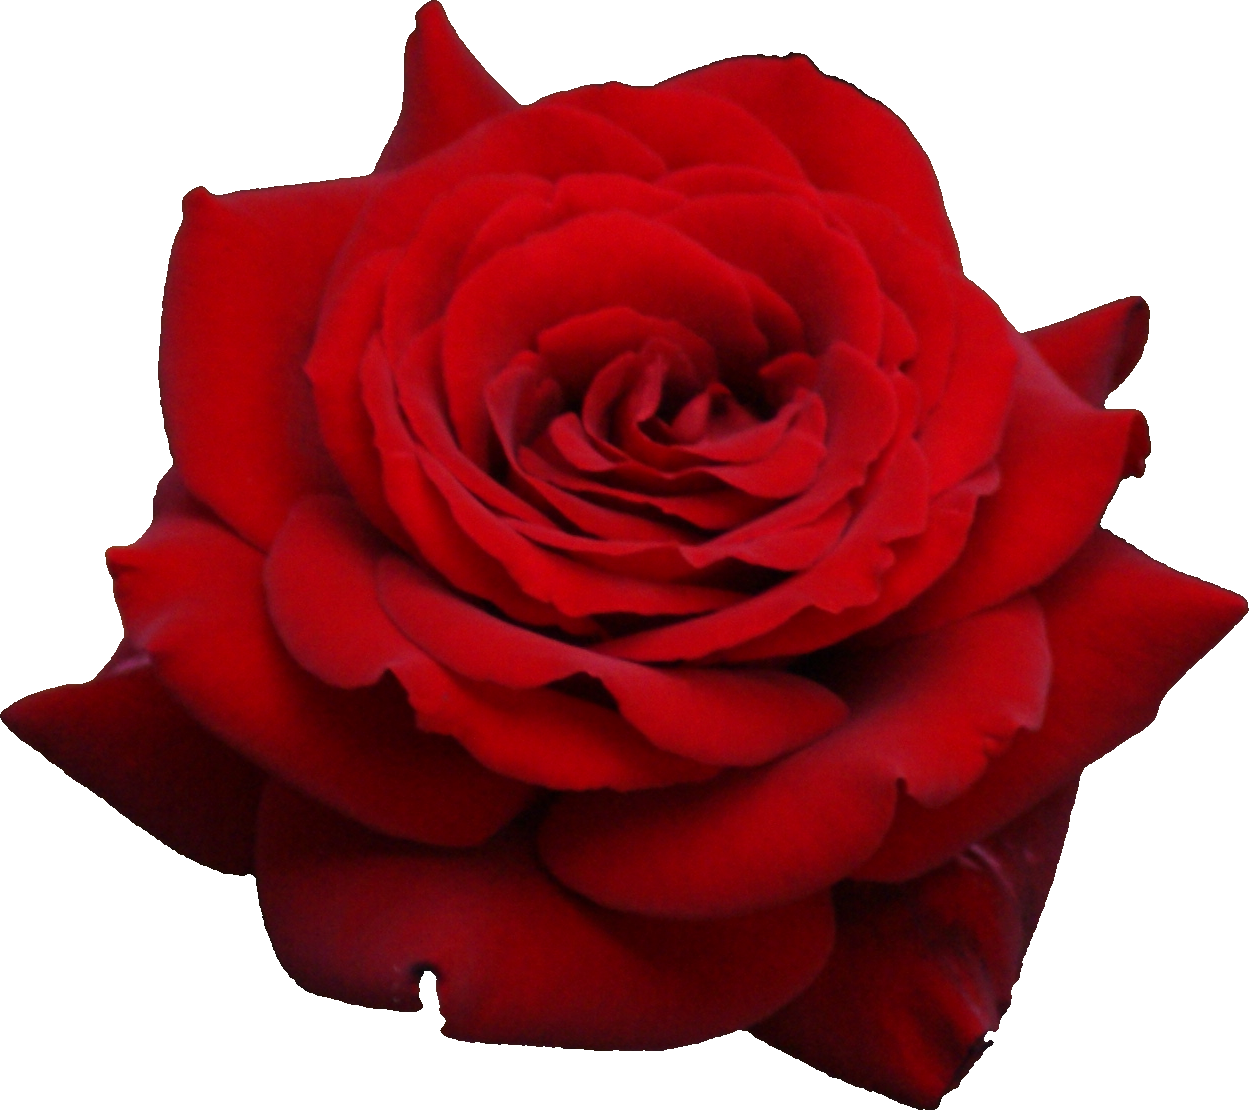 Red rose png image, free picture download - Rose HD PNG